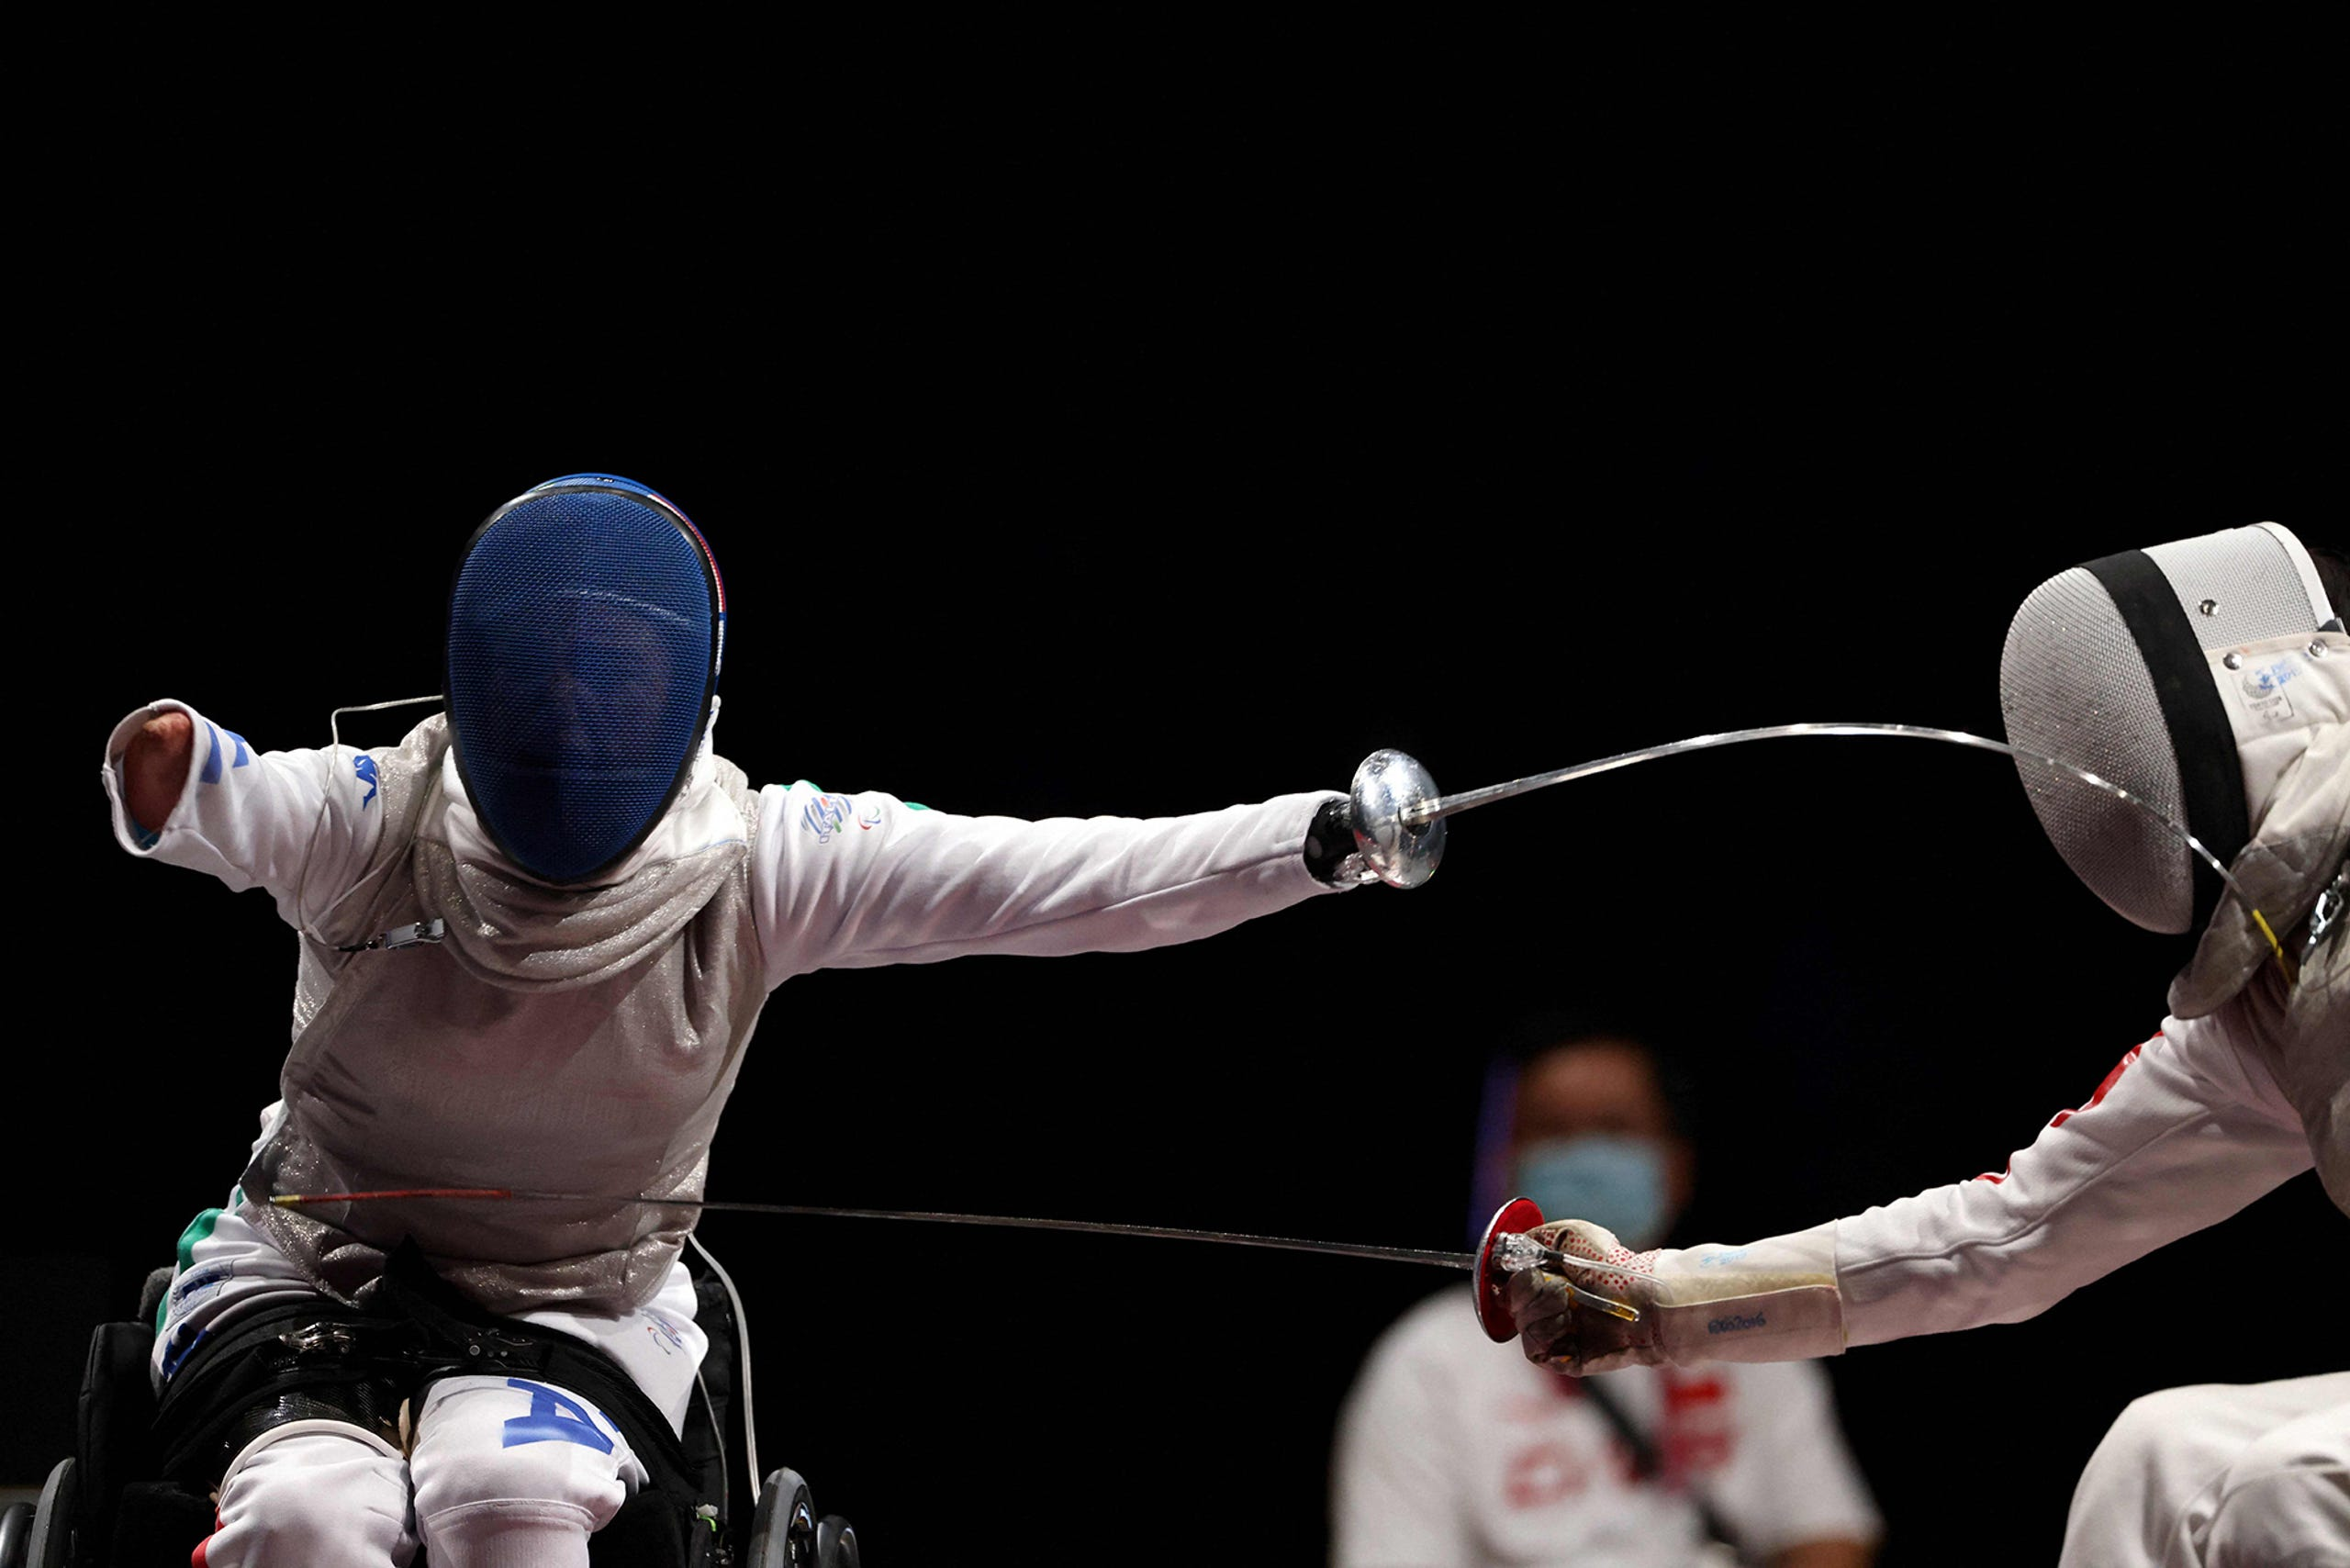 Aug. 28, 2021: Italy's Beatrice Vio (L) reacts for a point as she competes with China's Jingjing Zhou in the wheelchair fencing women's foil individual category B final bout during the Tokyo 2020 Paralympic Games at Makuhari Messe Hall in Chiba .